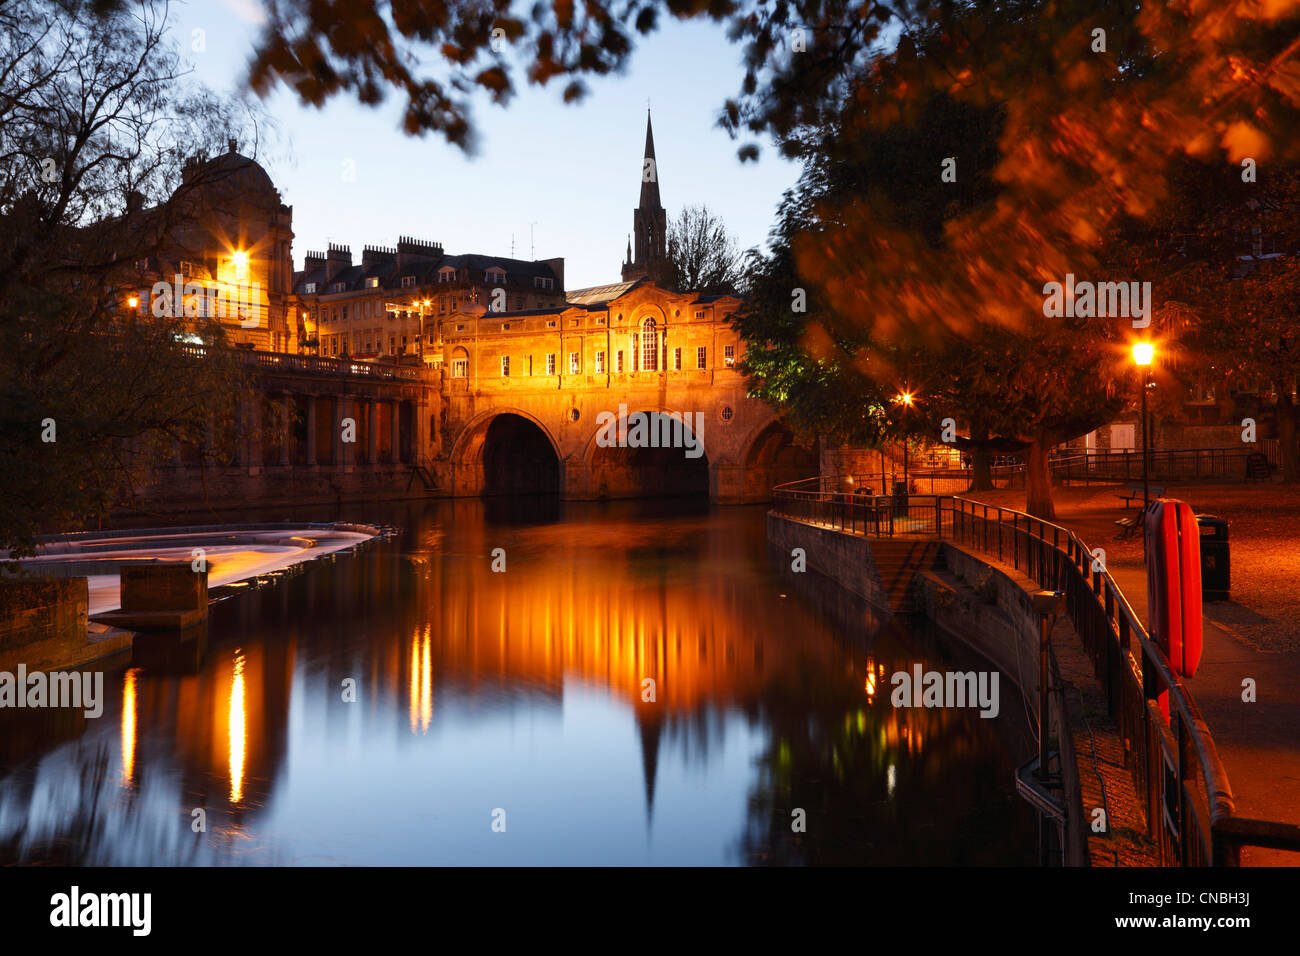 Pulteney Bridge Illuminated at Dusk. Bath. Somerset. England. UK. - Stock Image